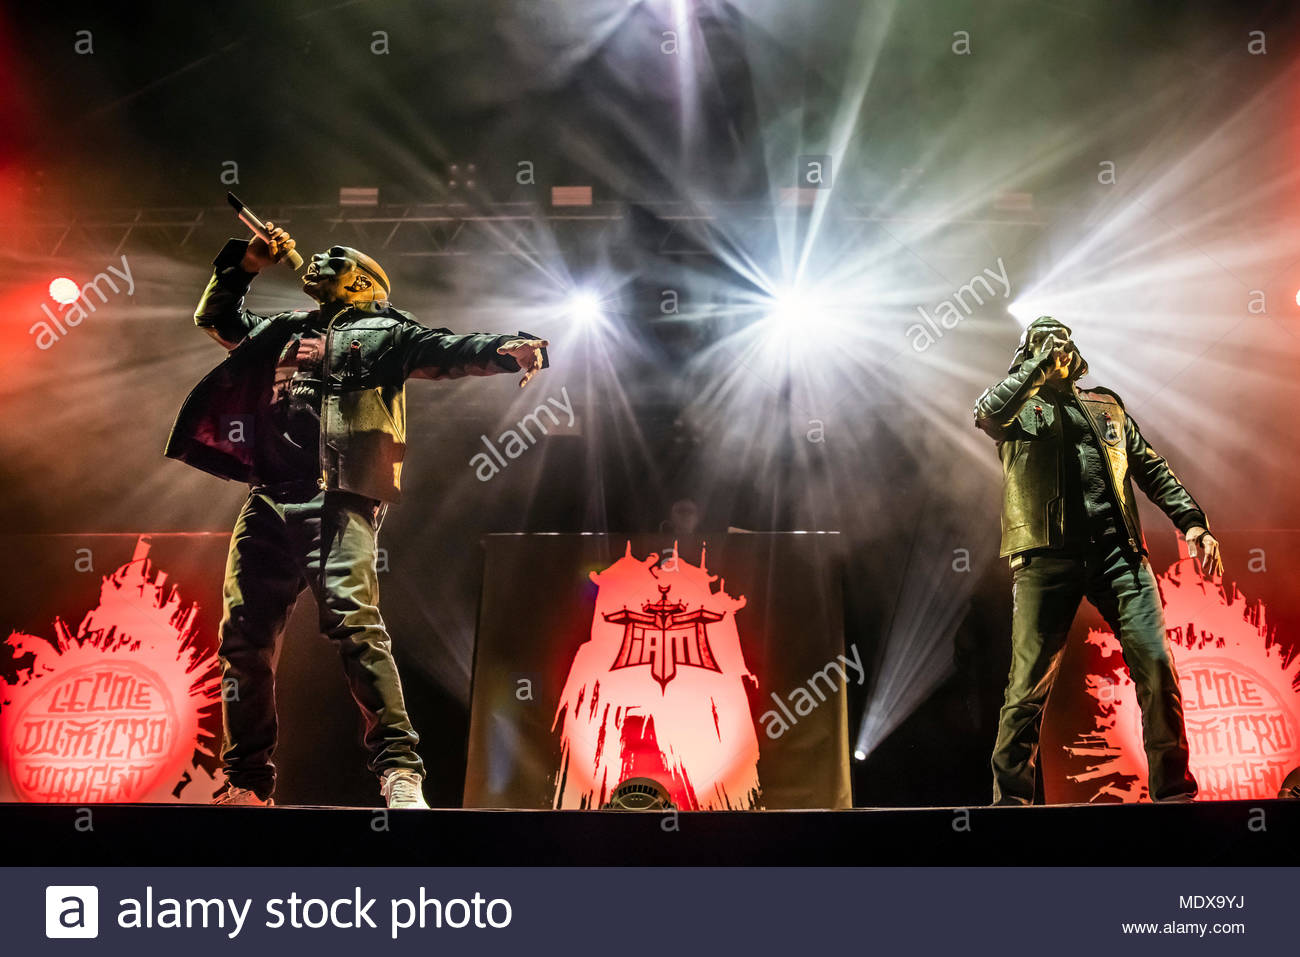 IAM performing live at the first edition of MUSILAC Mont-Blanc music festival in Chamonix (France) - 20 April 2018 Stock Photo